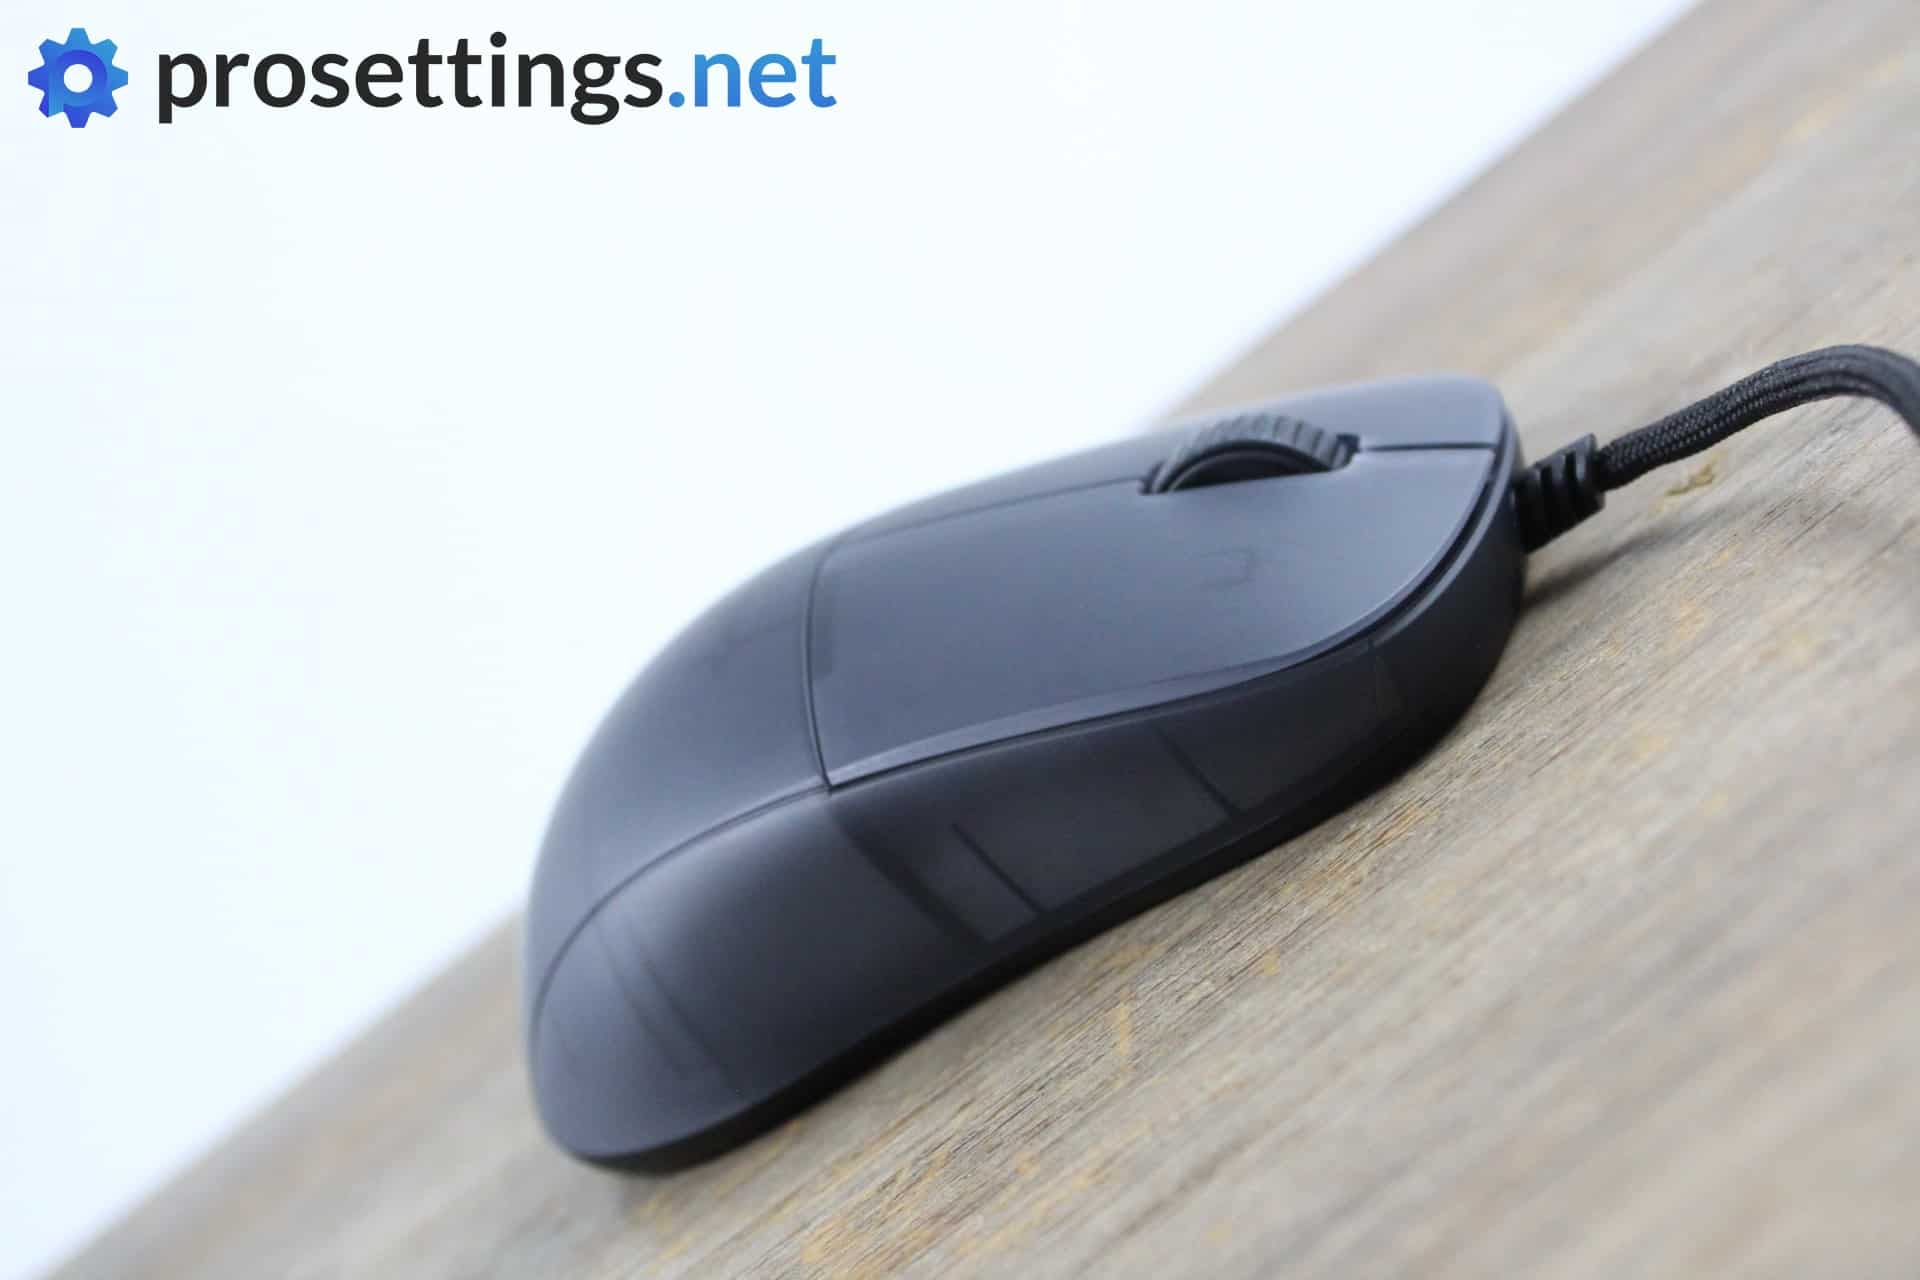 Endgame Gear XM1r Review Mouse